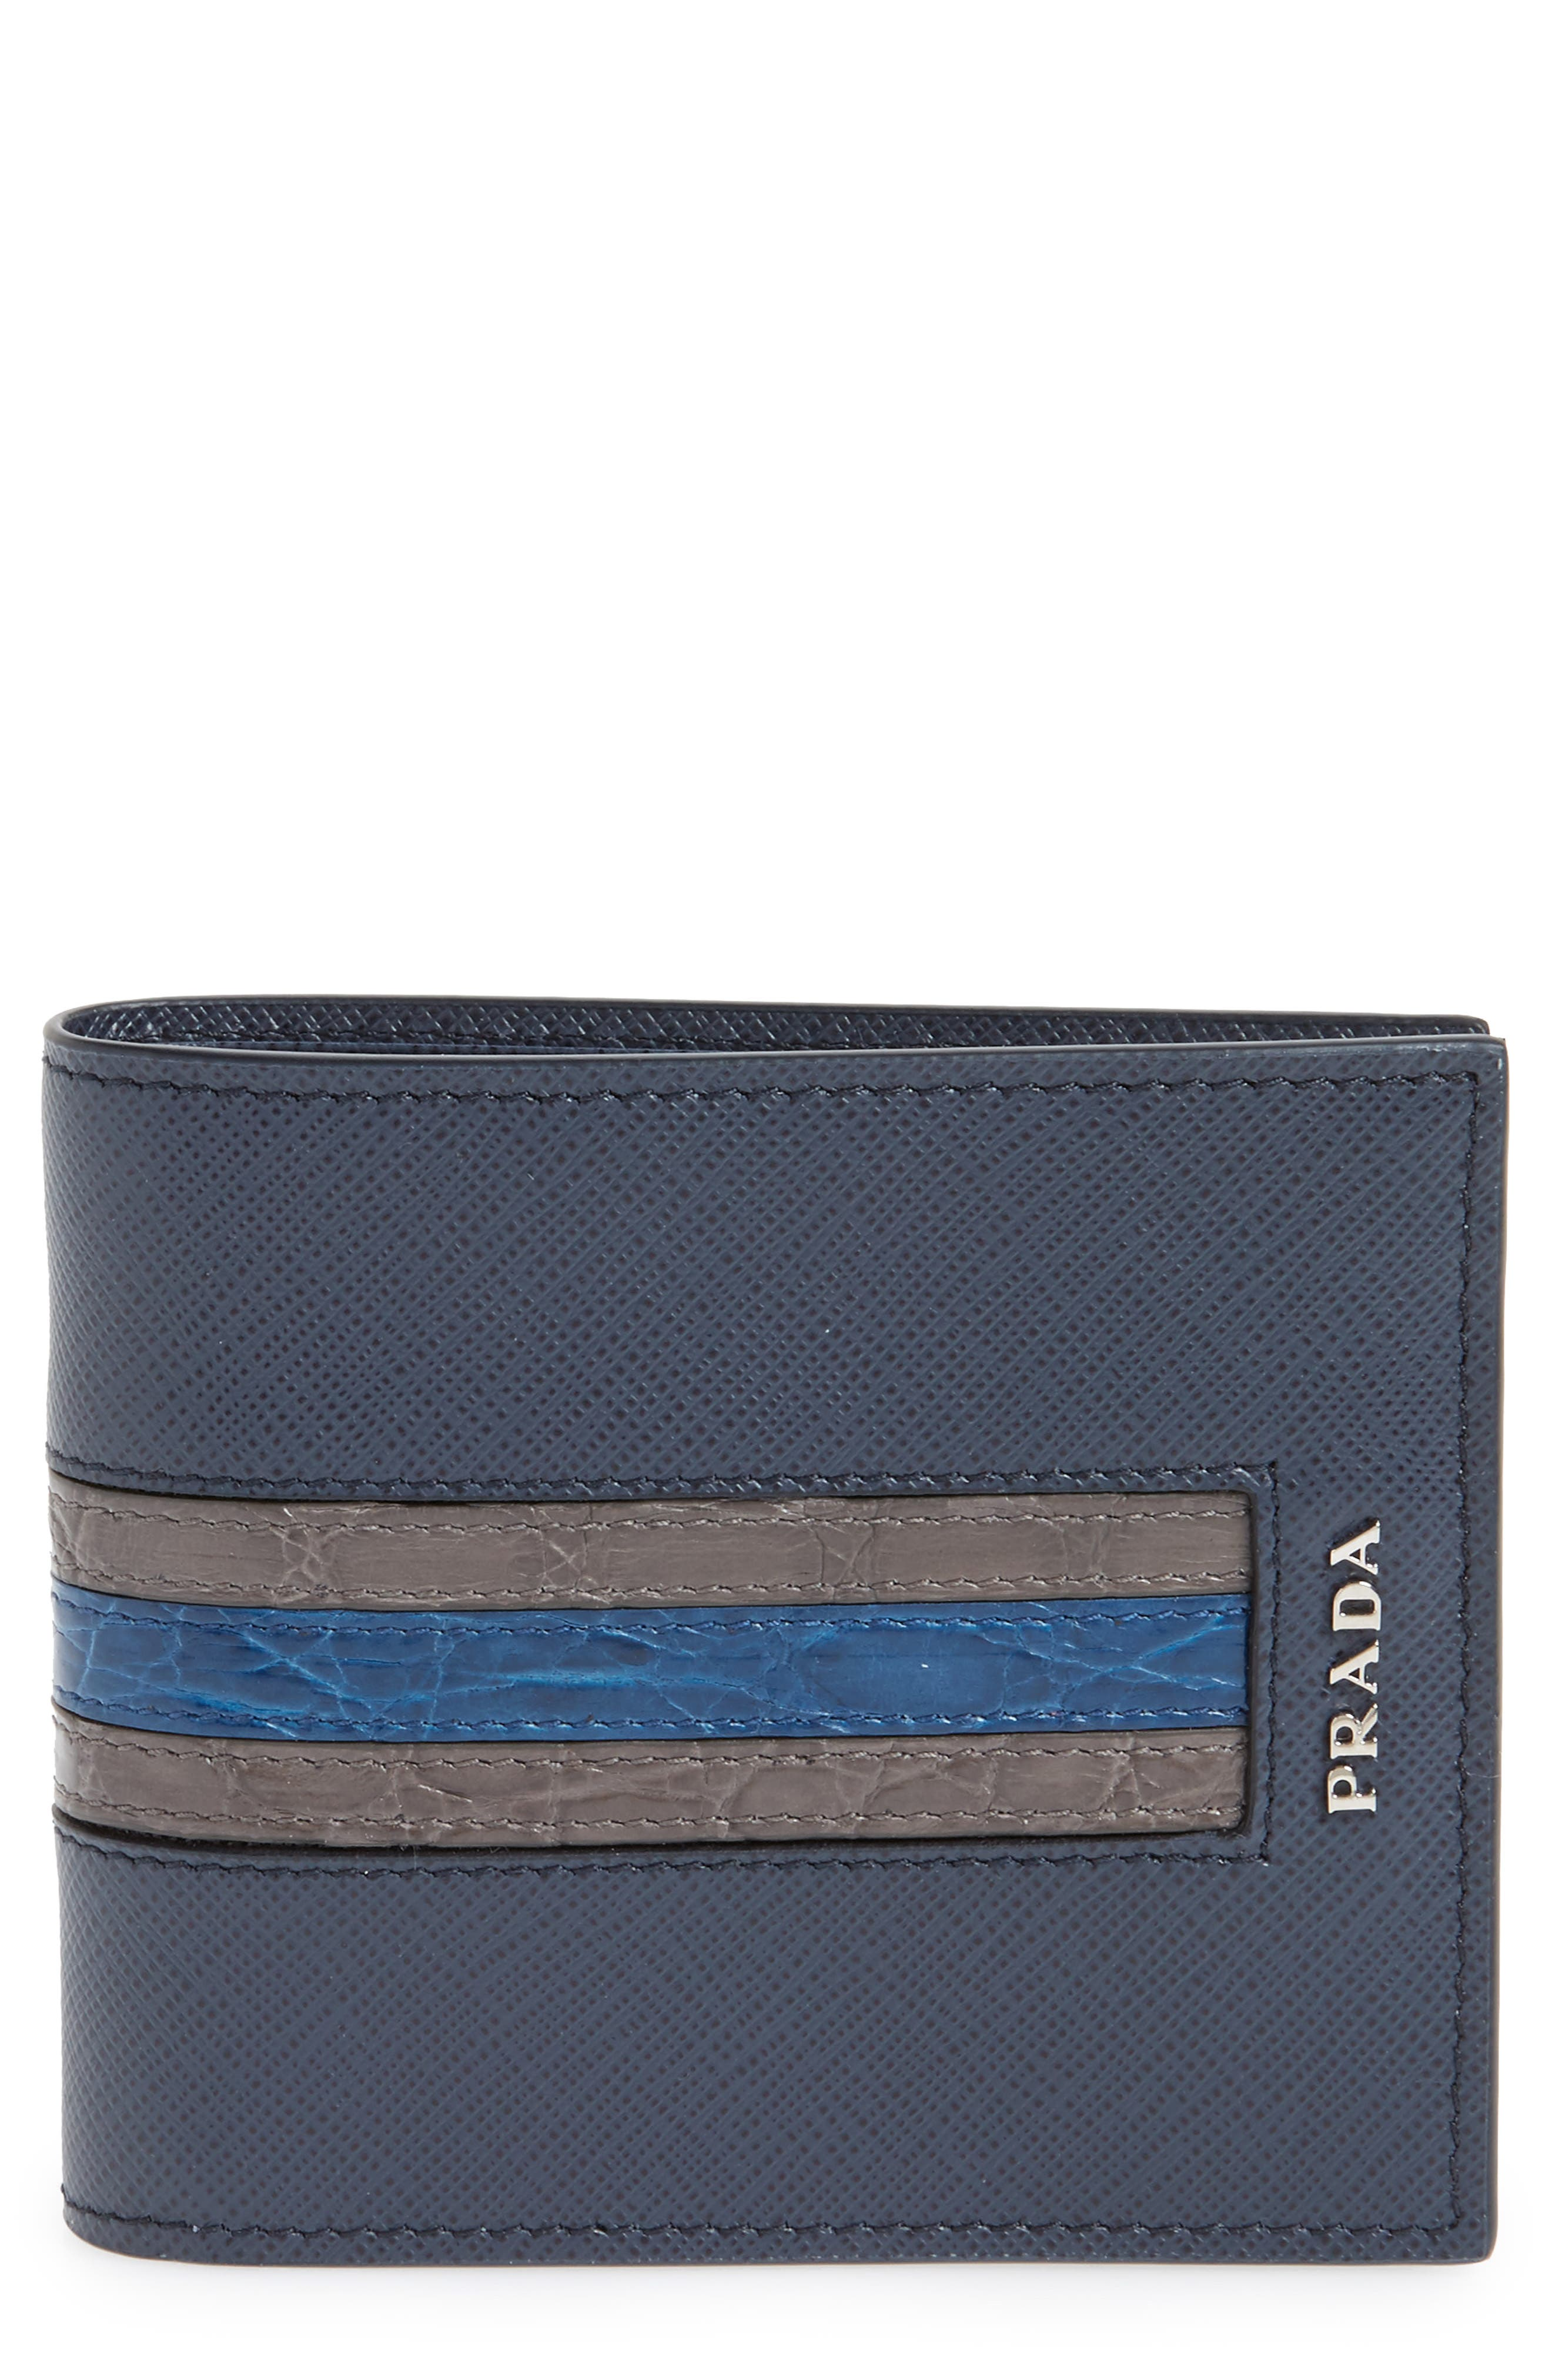 Saffiano and Crocodile Leather Wallet,                             Main thumbnail 2, color,